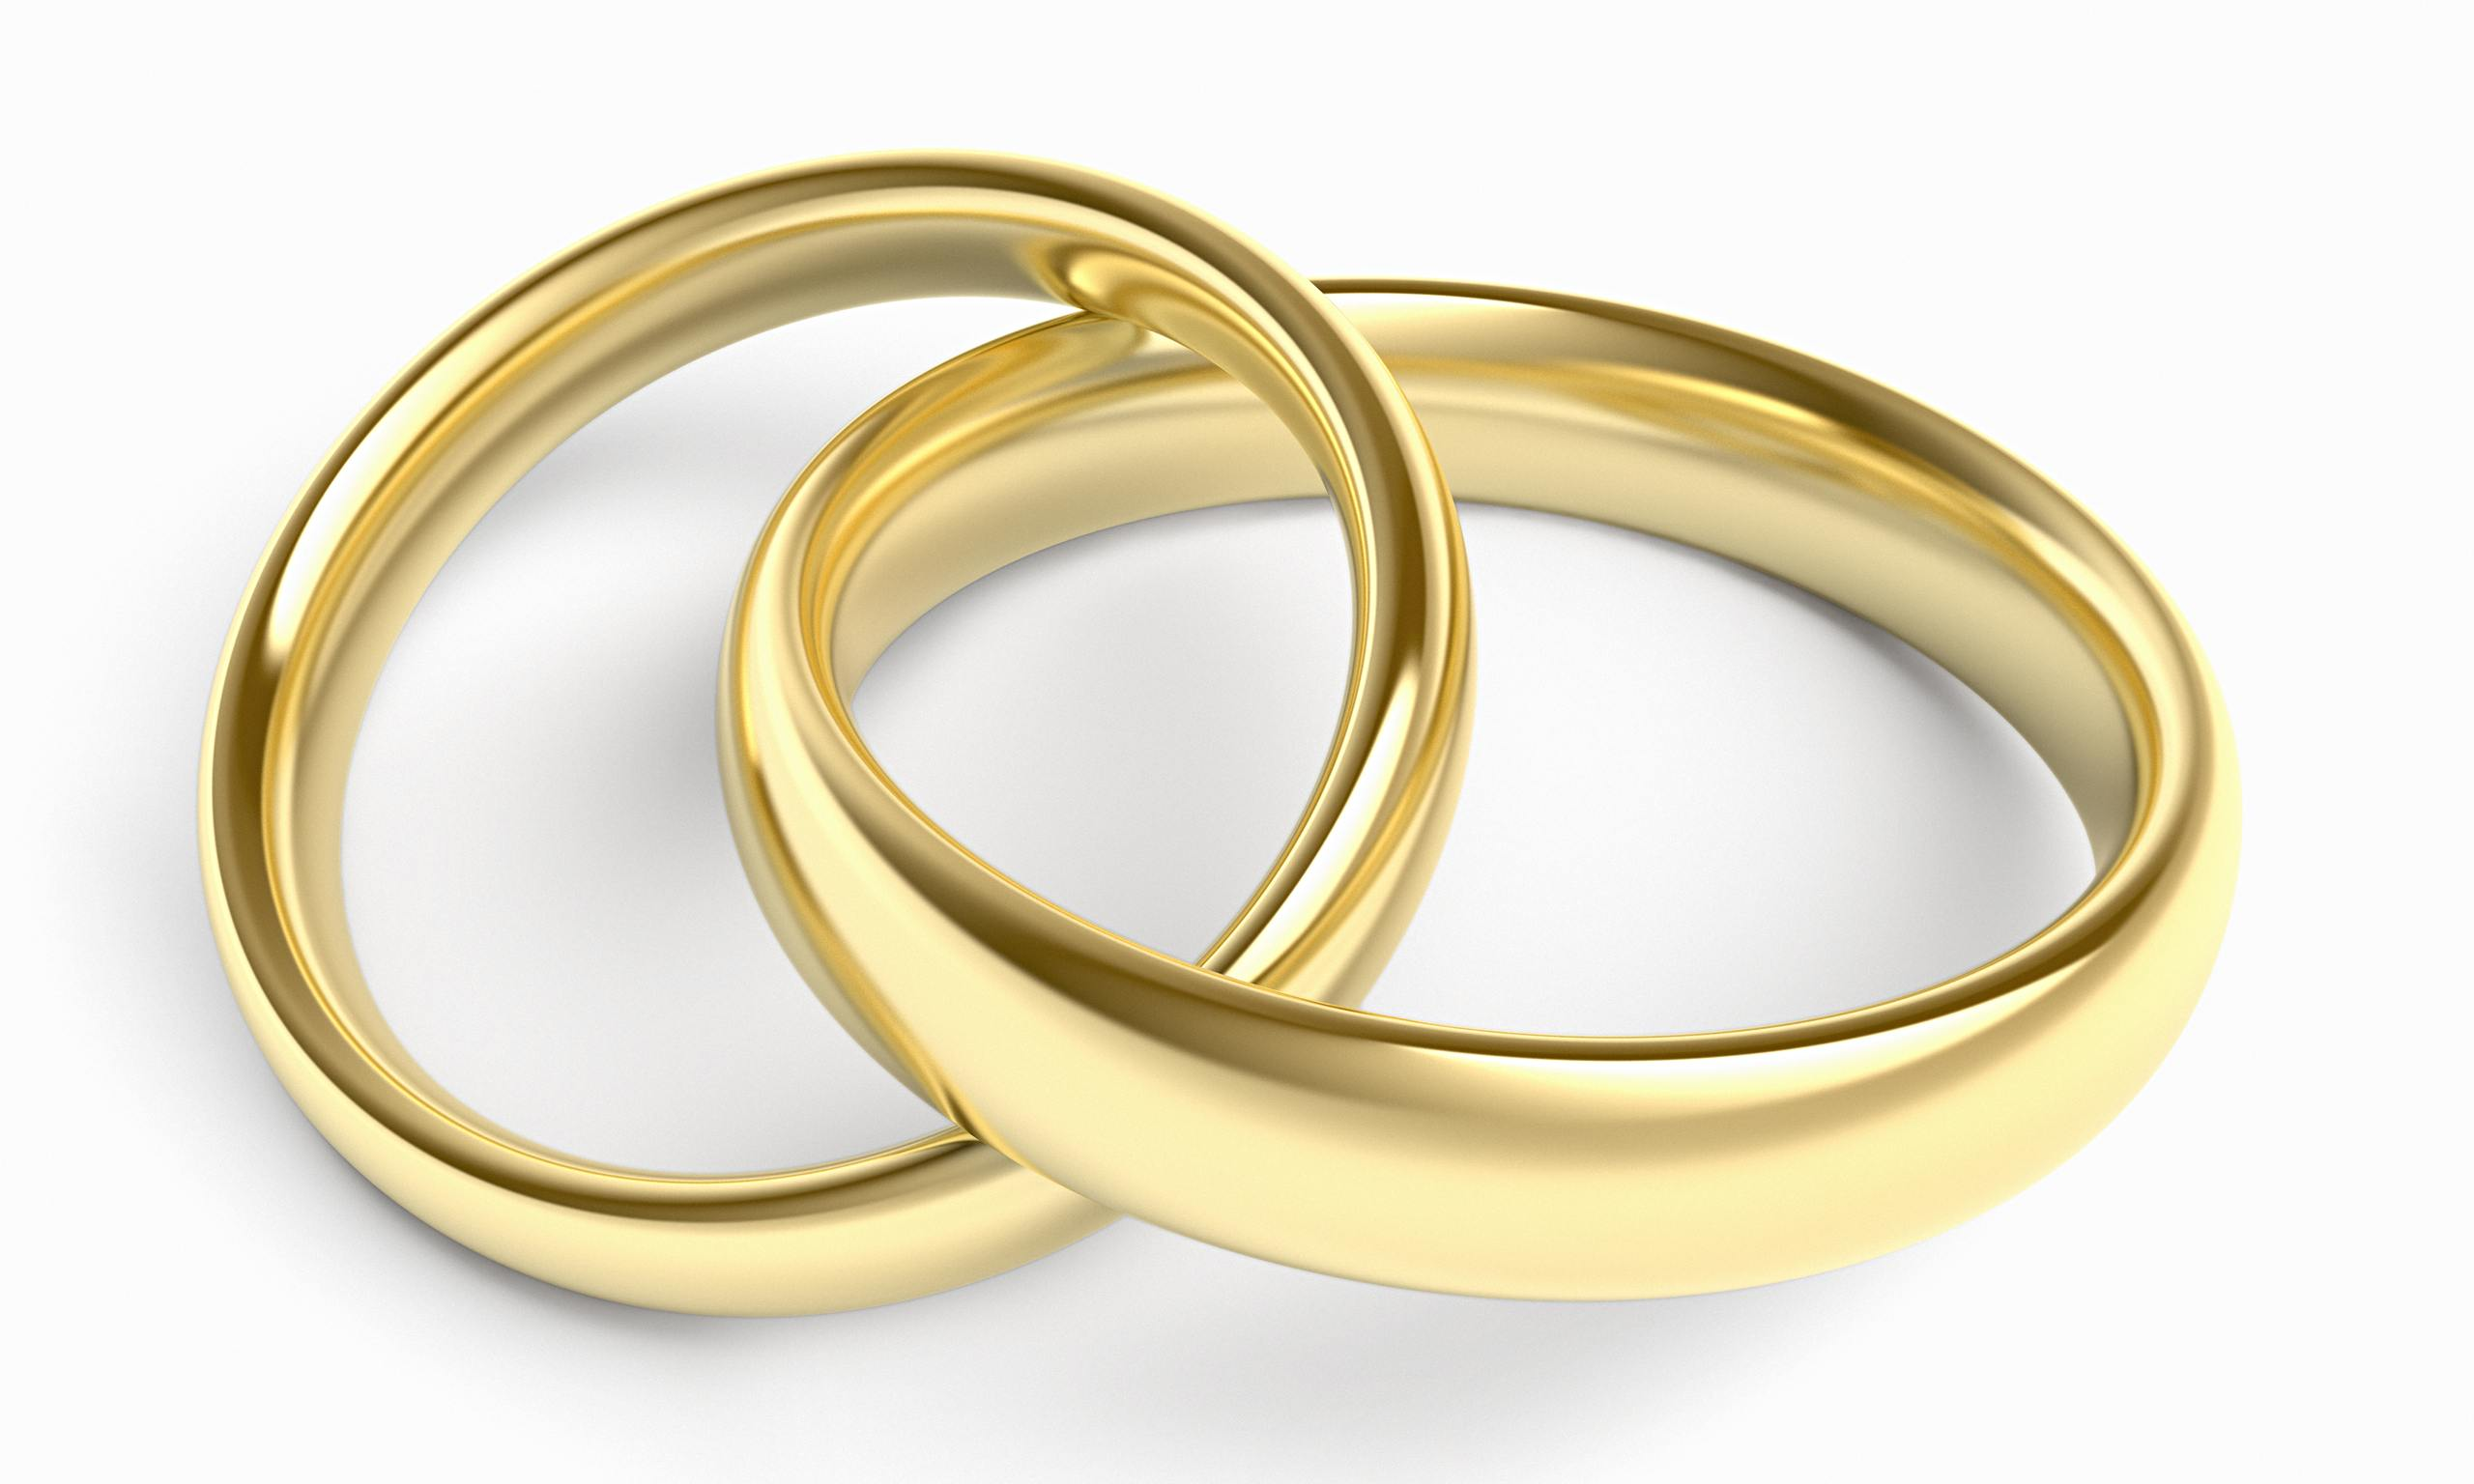 Rockraikar Wedding Ring In A Box Clip Art at Clker.com vector clip ...